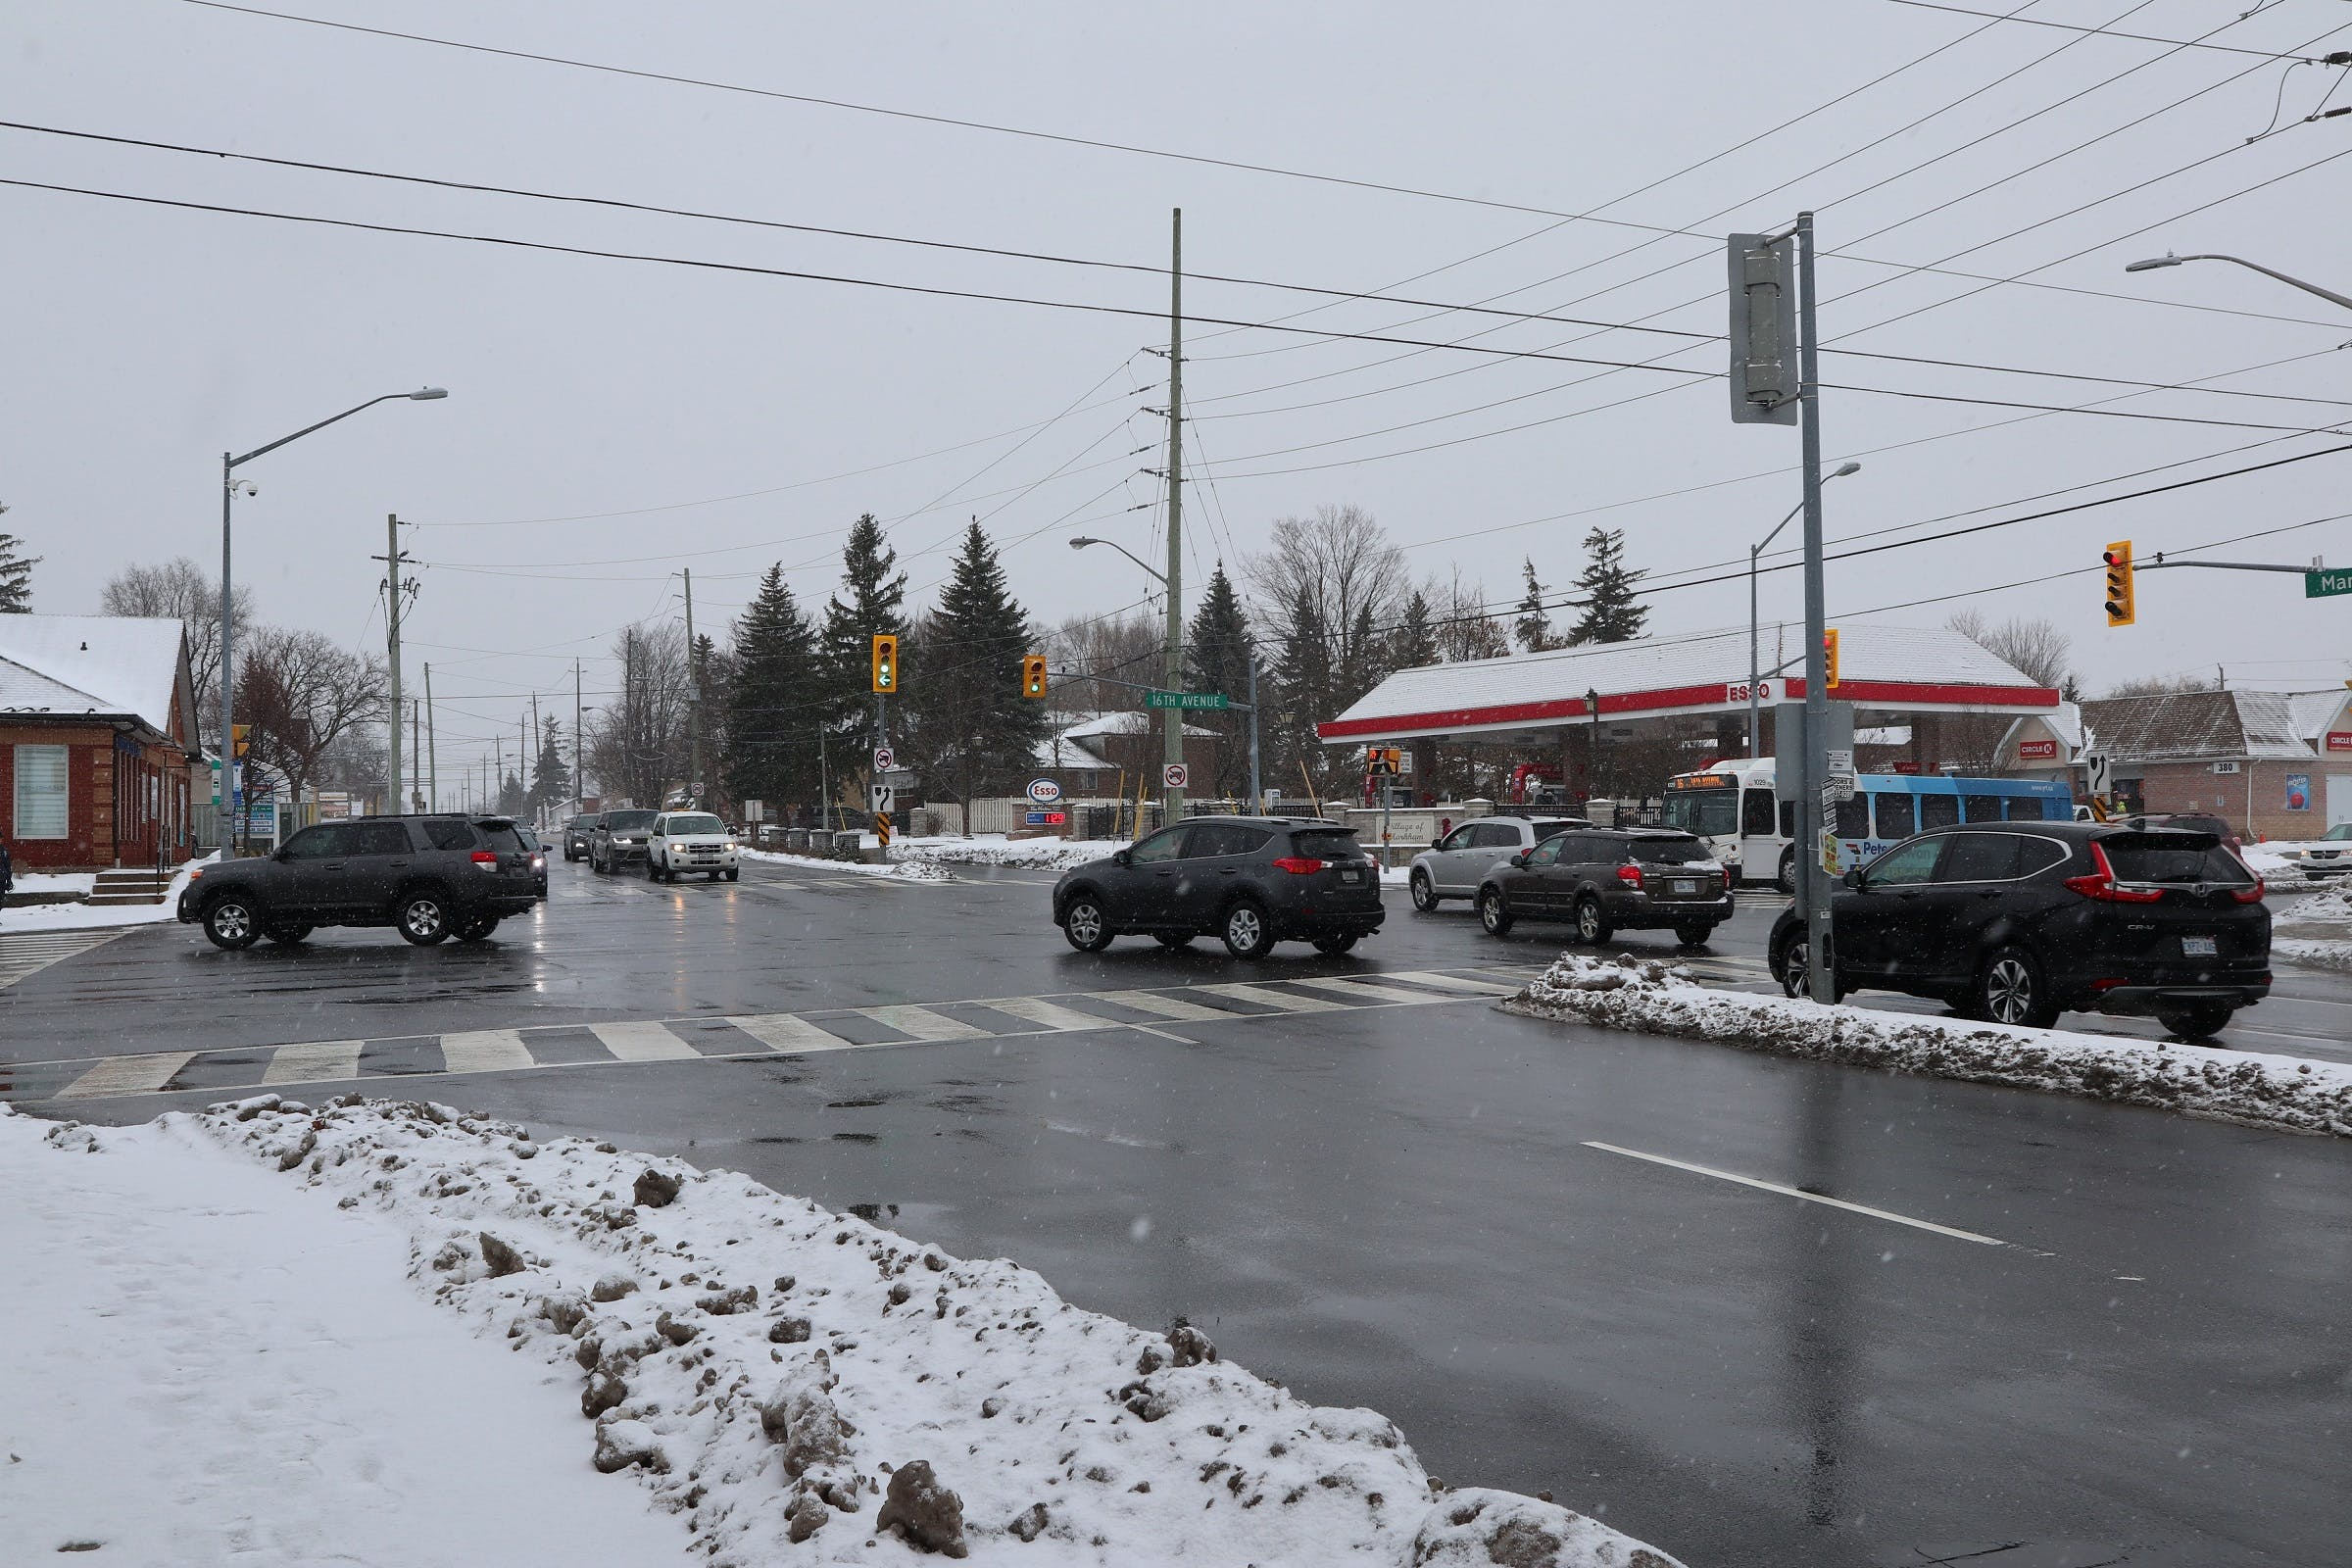 Markham Road looking south at 16th Avenue